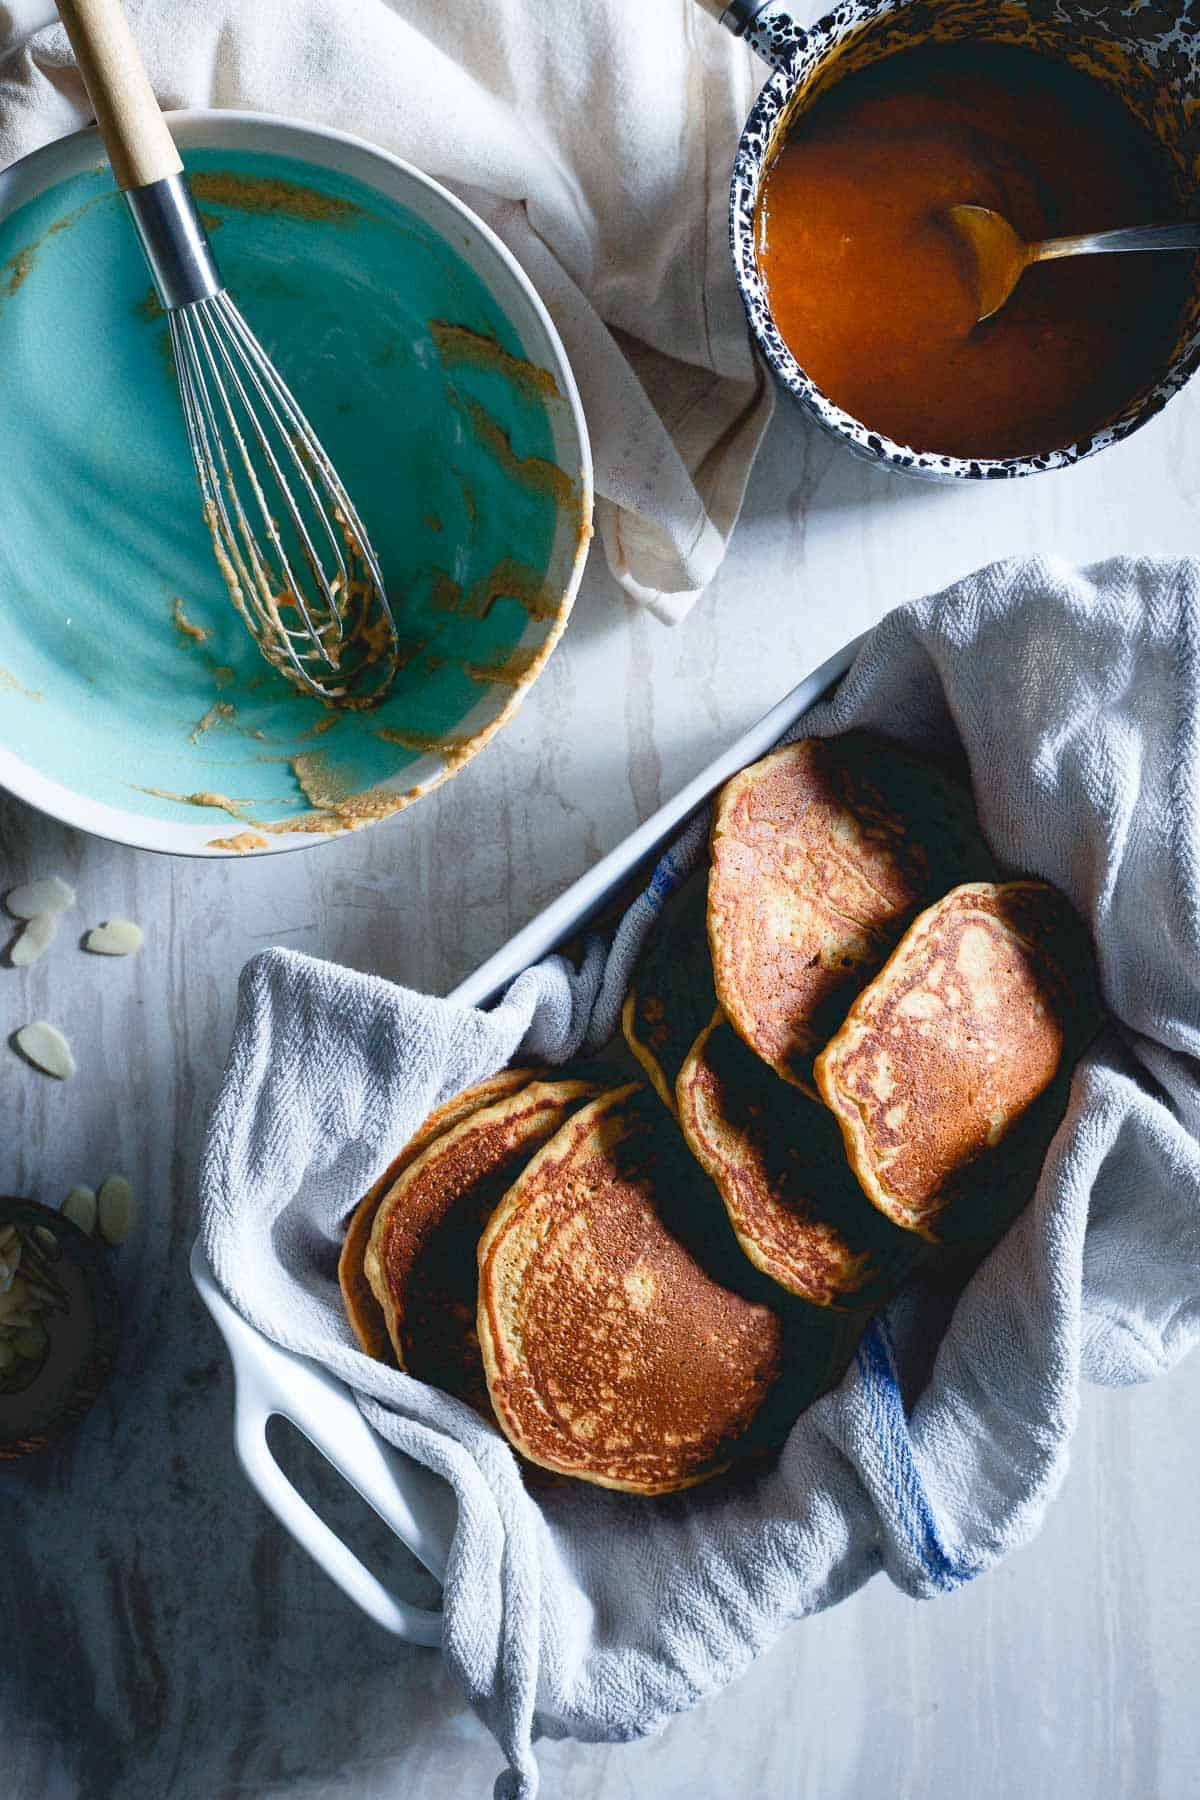 Whole wheat persimmon pancakes are a lovely way to celebrate winter fruit and cozy mornings.